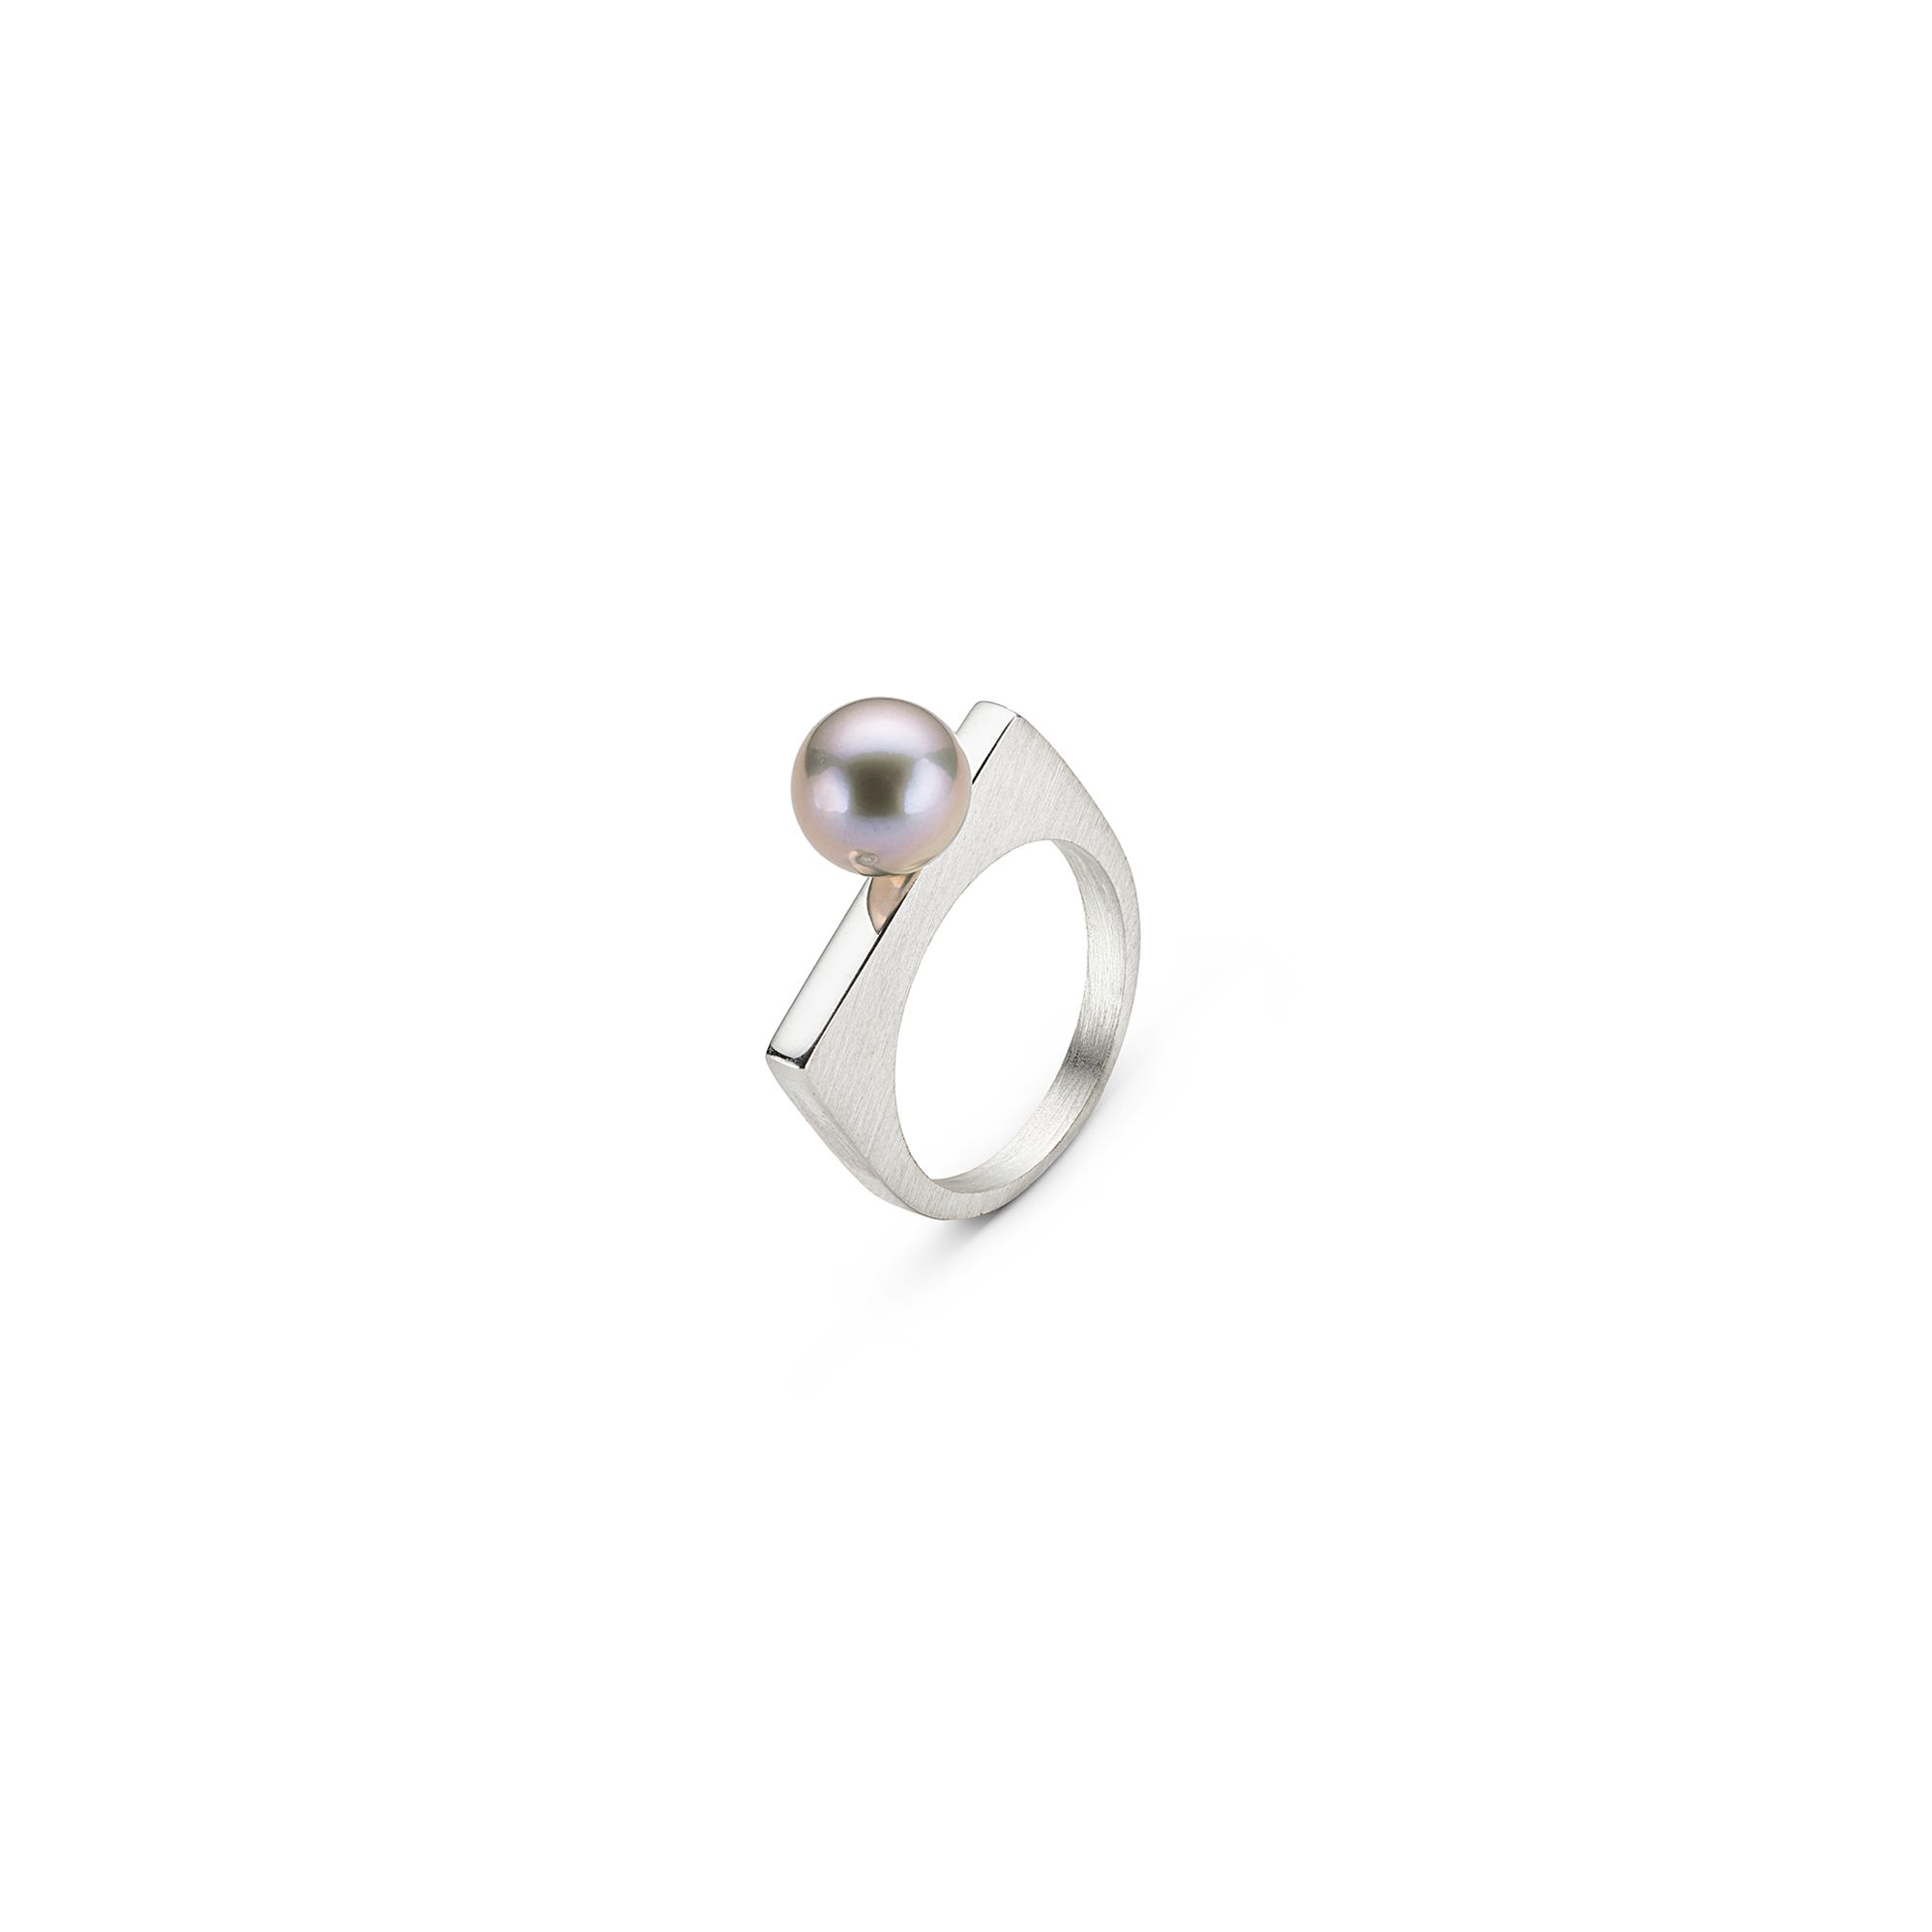 Grey 'Congiunzioni' pearl ring Silver ring with a grey river pearl